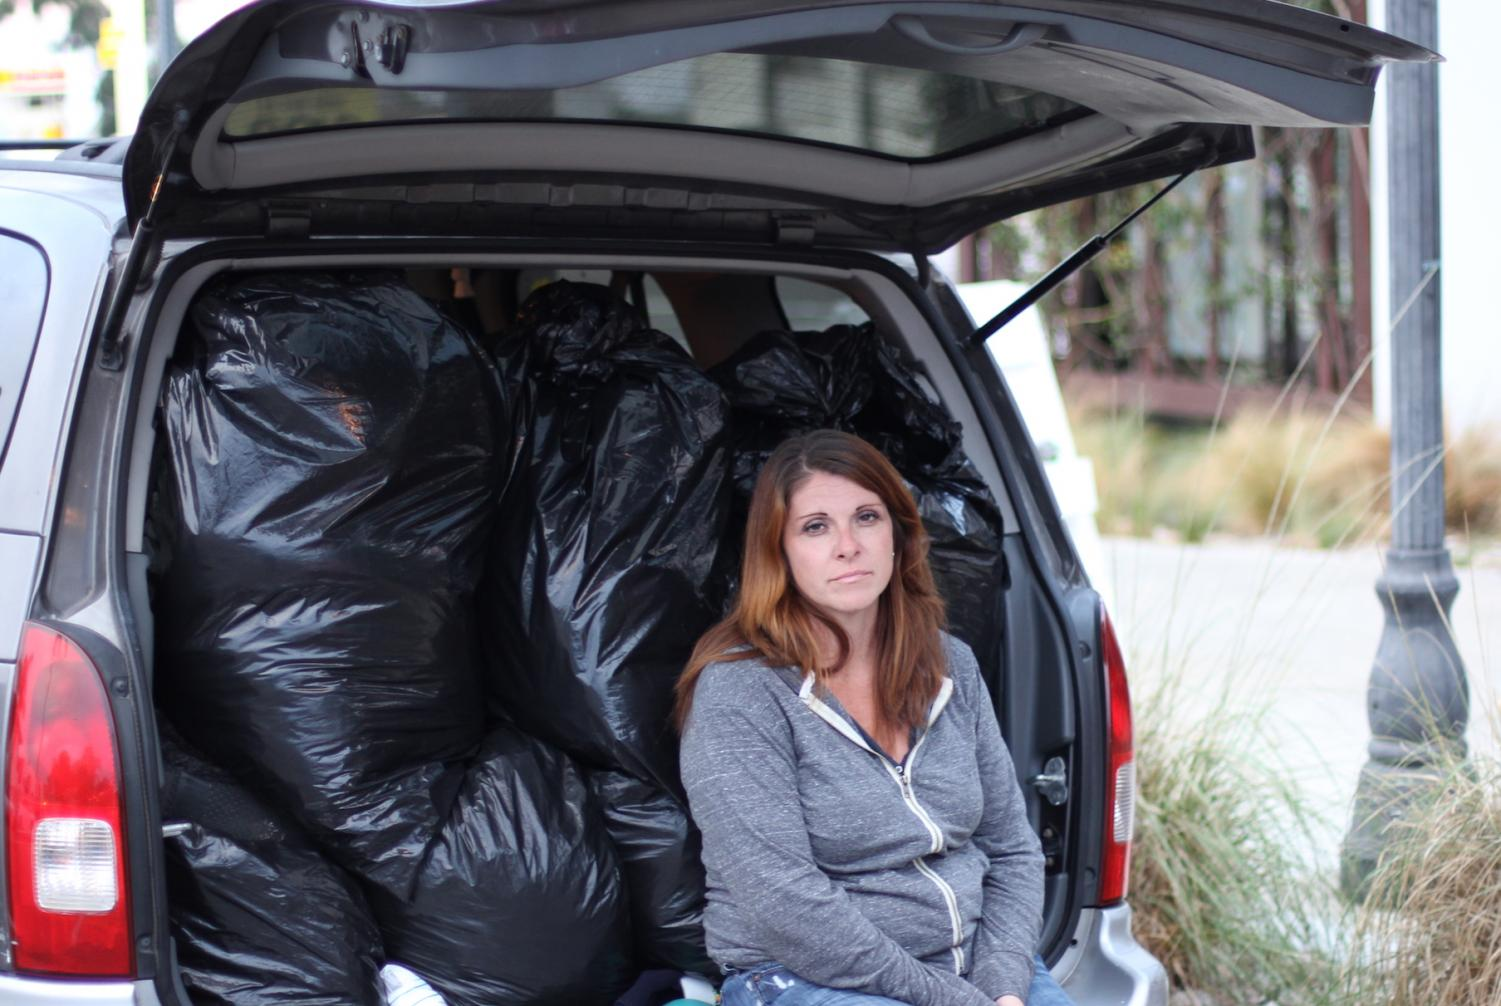 City College student Lola Cheatham had to live with her daughters out of their vehicle for several years. By Jonny Rico/City Times